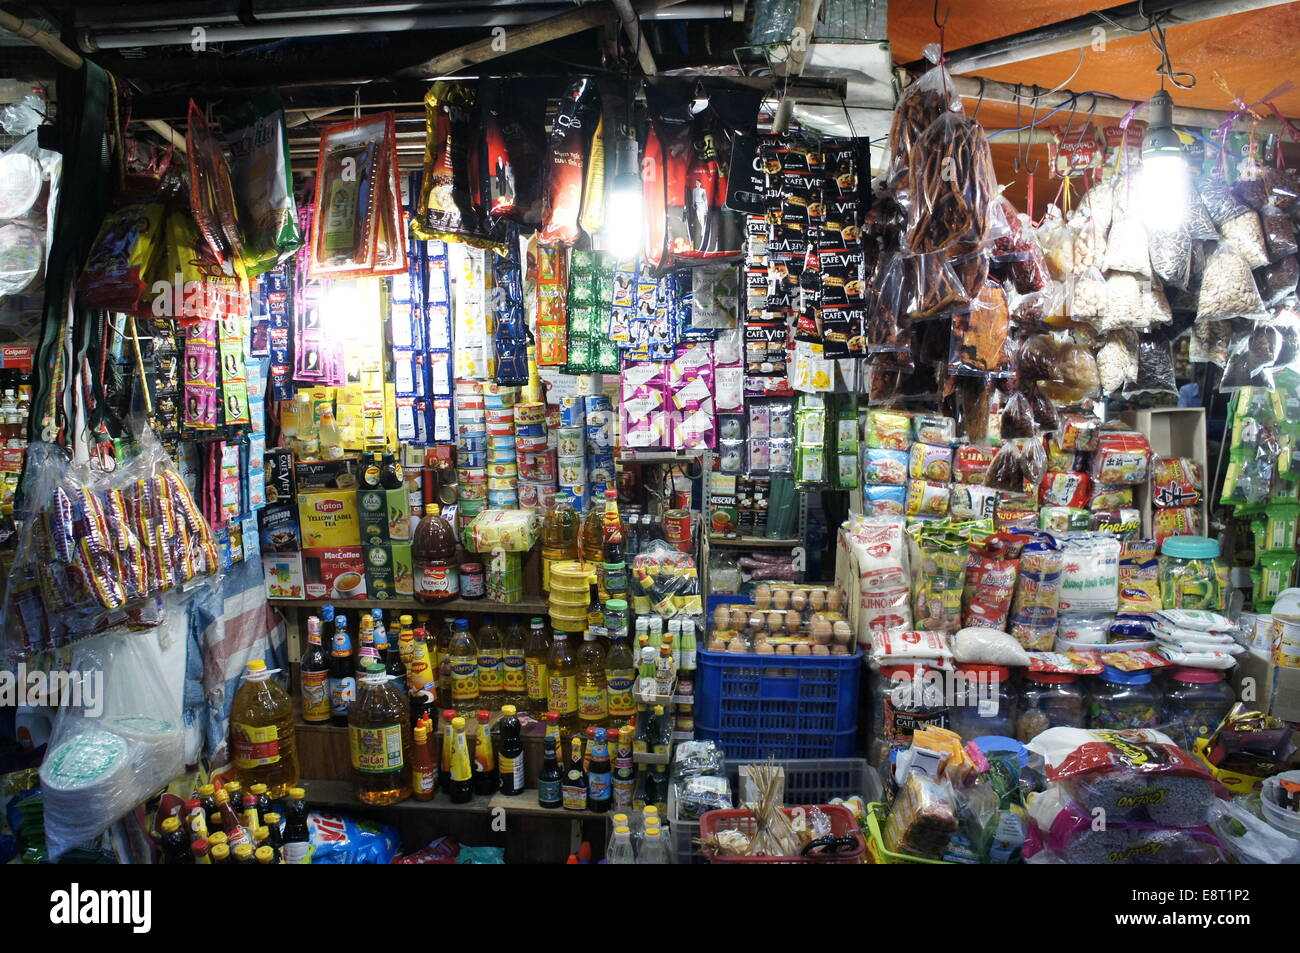 street market stall selling groceries and sundry items in Ho Chi Minh city Stock Photo